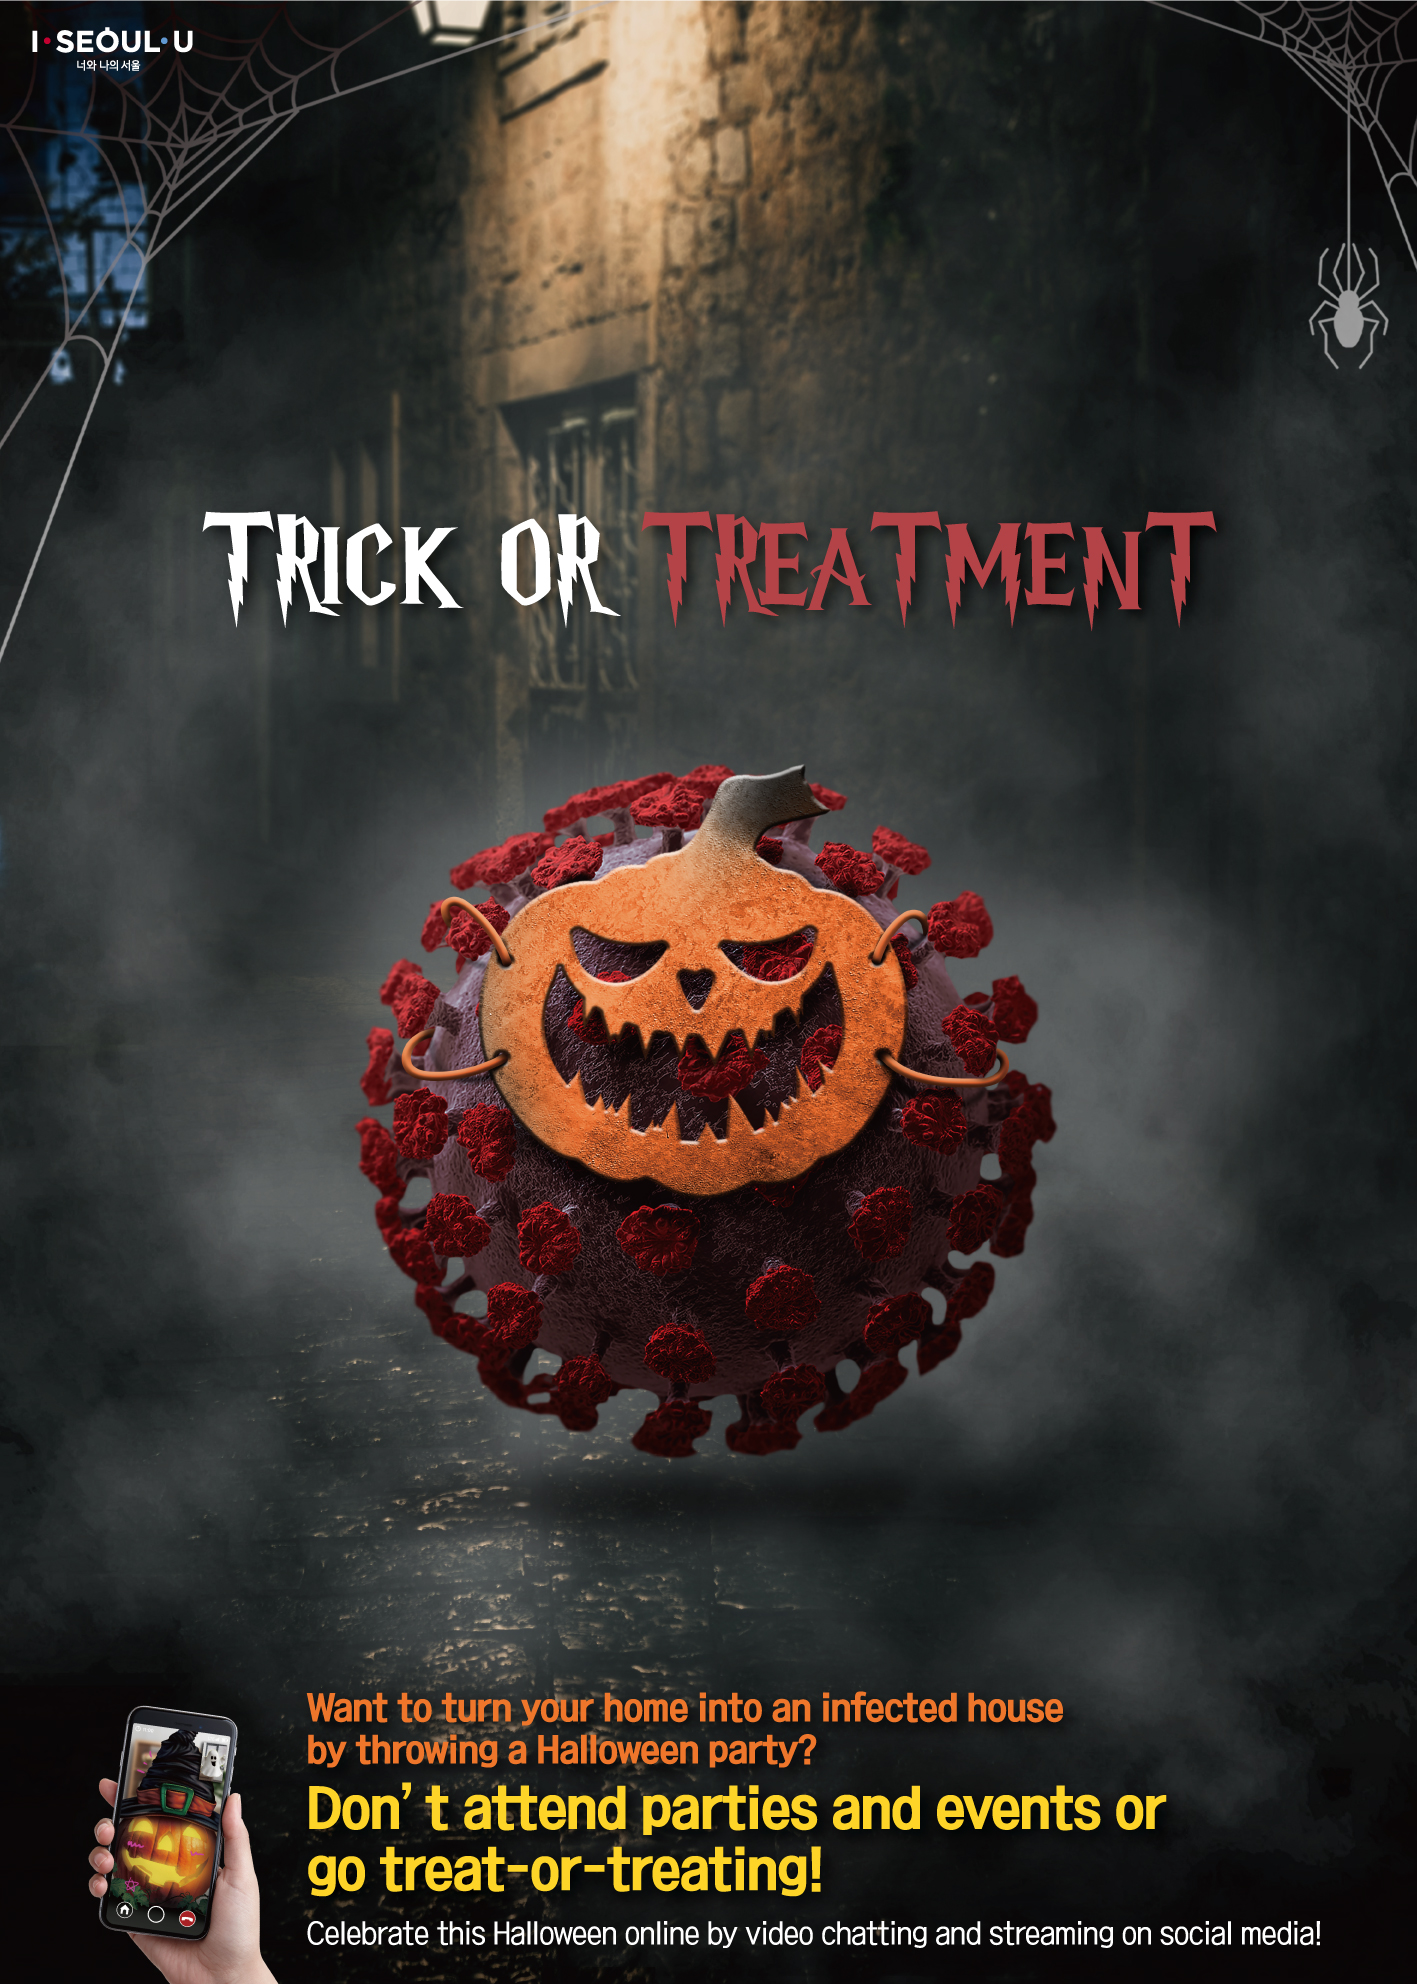 HAPPY CORONAWEEN TRICK OR TREATMENT Want to turn your home into an infected house of horror by throwing a Halloween party? Don't attend parties and events or go treat-or-treating! Celebrate this Halloween online by video chatting and streaming on social media!